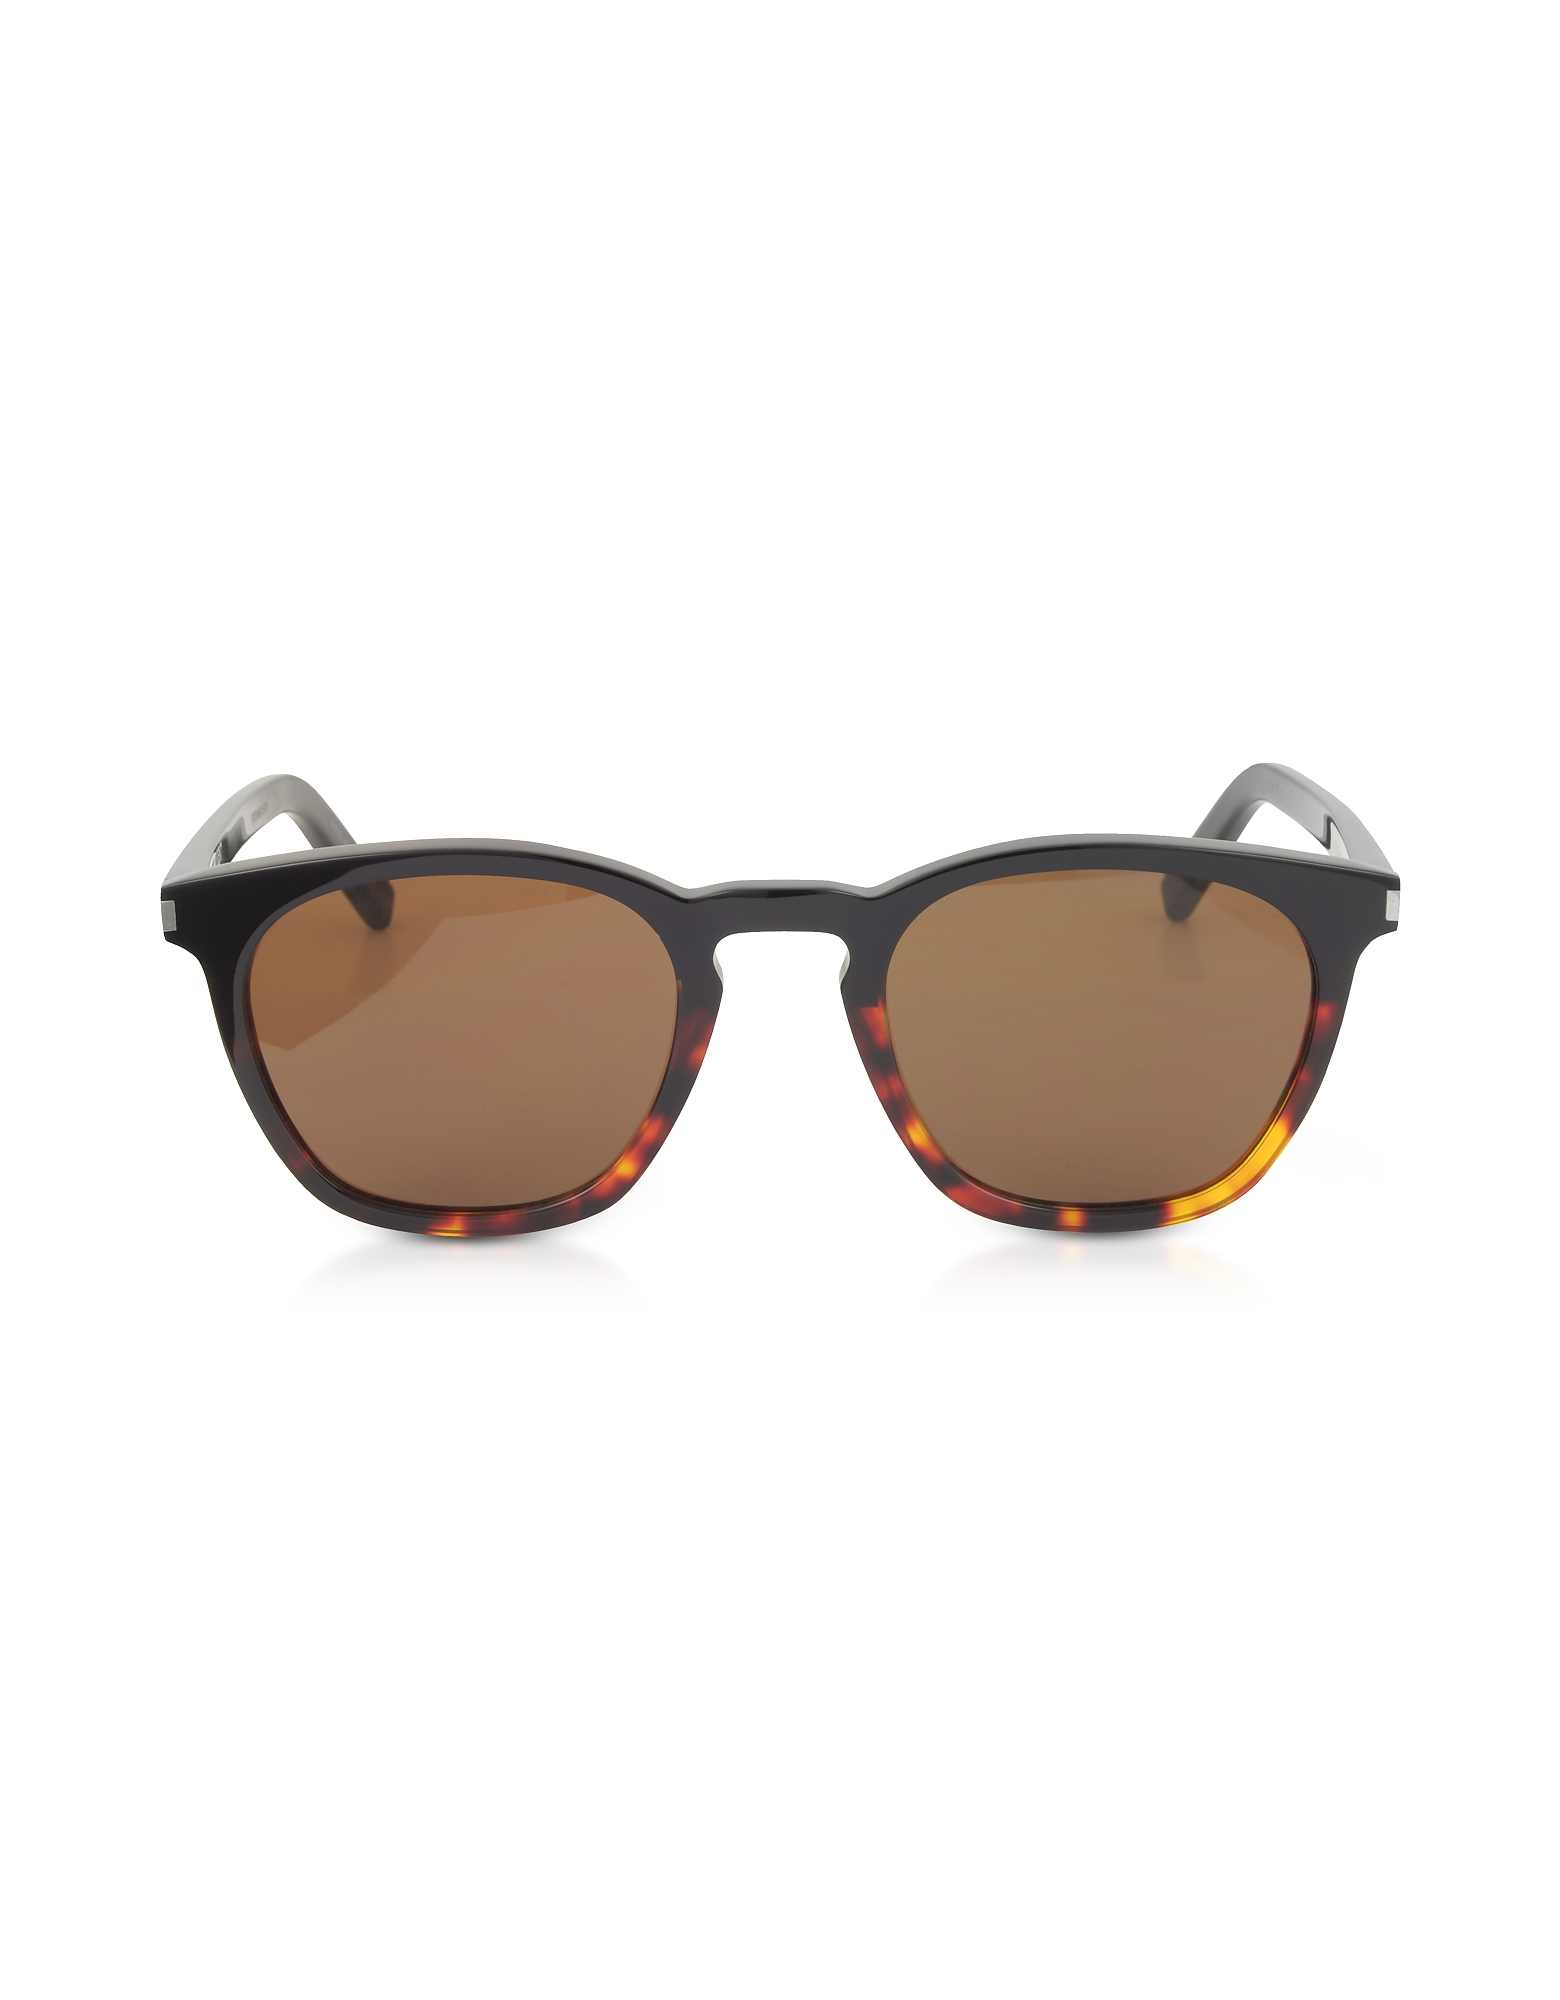 Saint Laurent Designer Sunglasses, SL 28 Two-Tone Acetate Frame Sunglasses